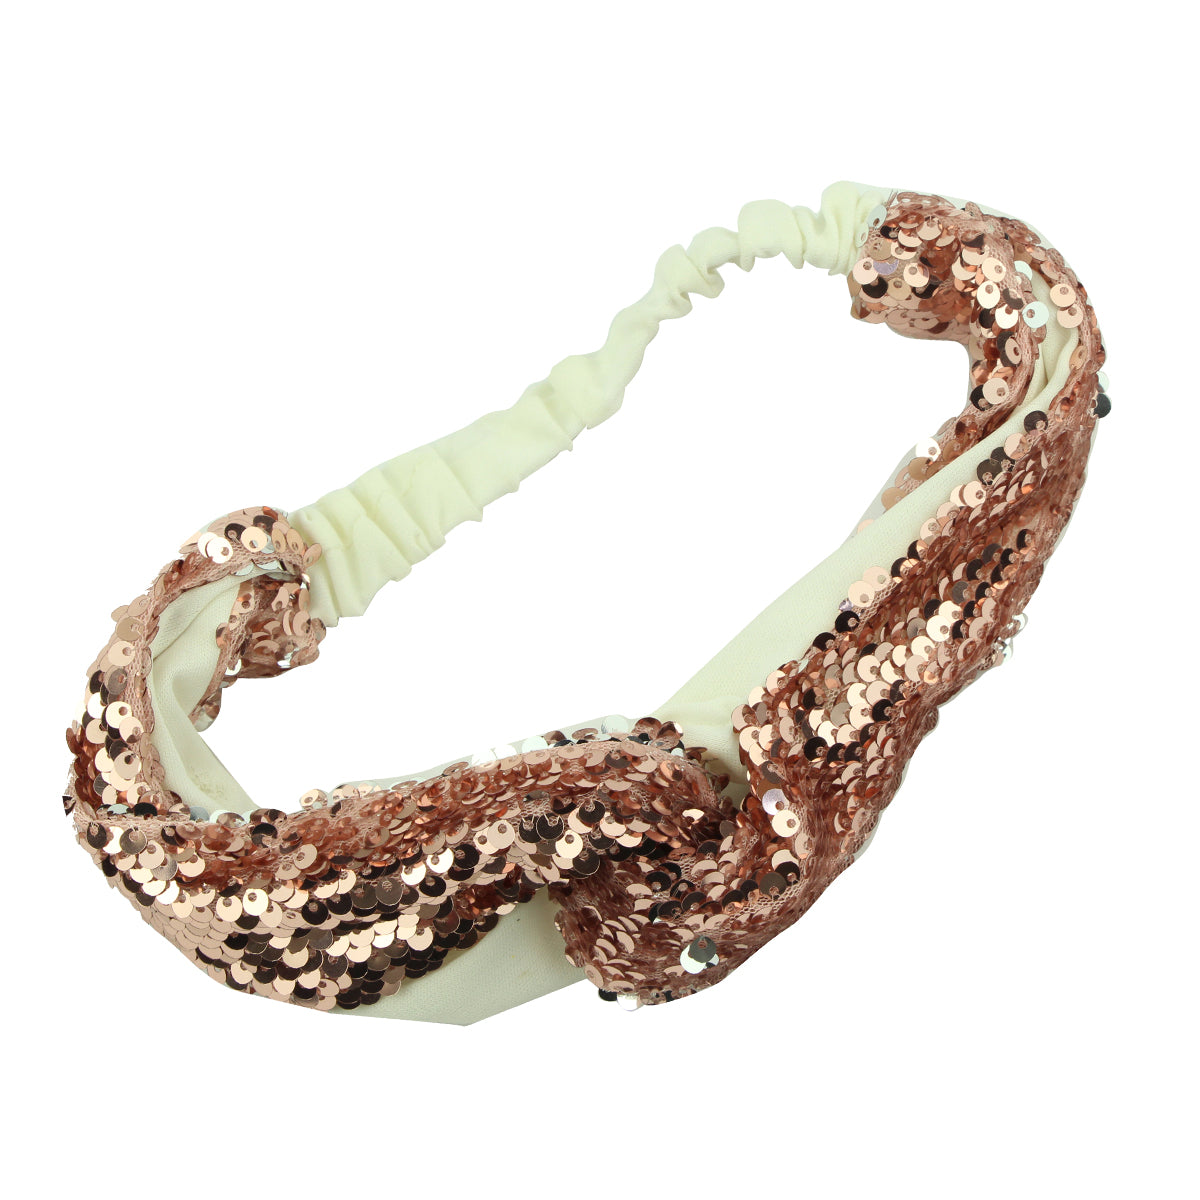 wholesale high quality fashion mermaid sequin sewing cross headband girls twist knot head wrap teenage from ASOS audit supplier5847 - SOHOBUCKS CO.,LIMITED